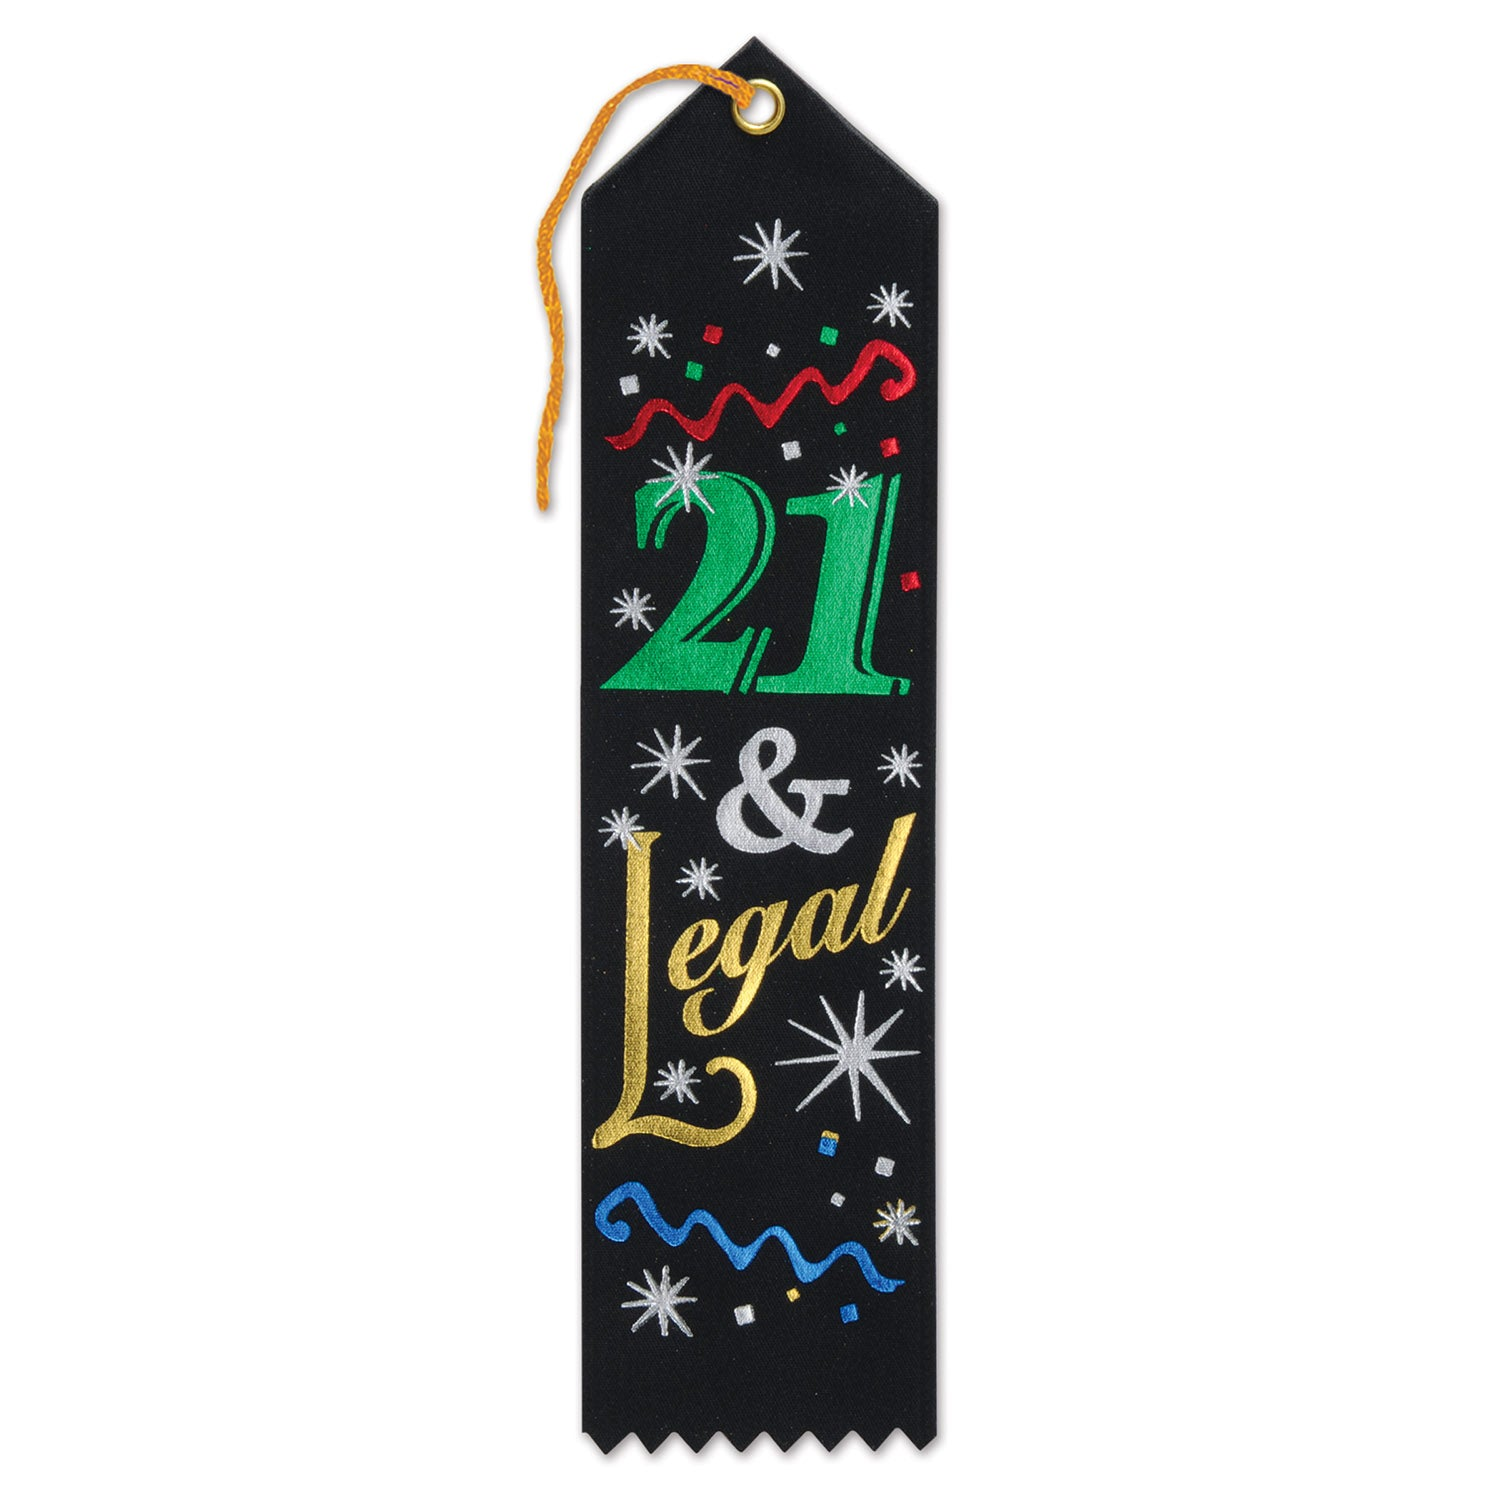 21 & Legal Award Ribbon by Beistle - 21st Birthday Theme Decorations